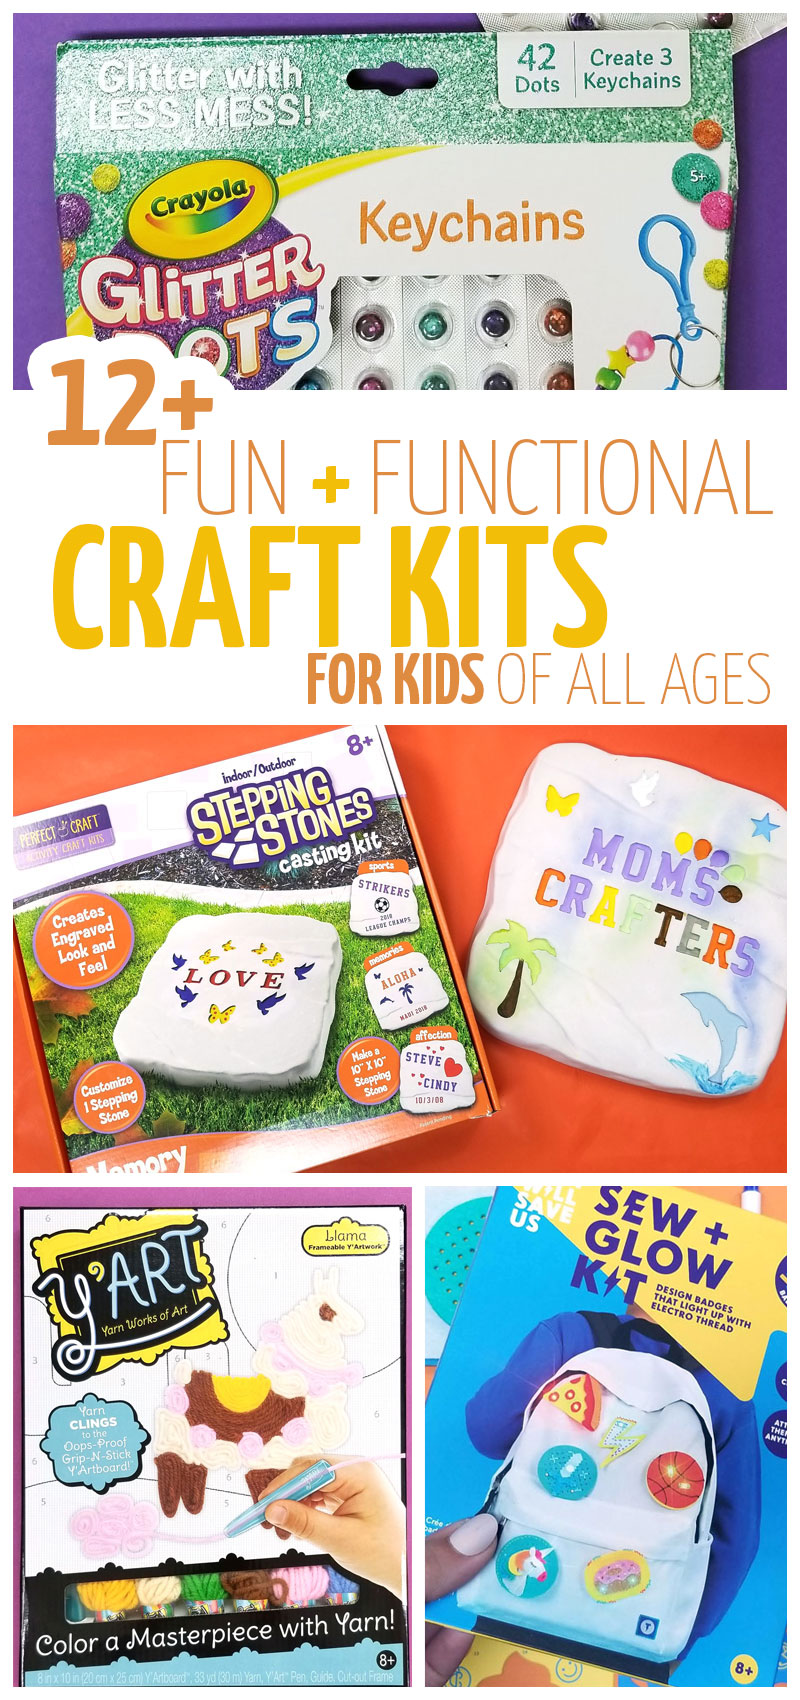 If you're looking for some fabulous gifts for crafters, try these craft making kits for kids! These wonderful holiday gifts for kids inspire creativity in preschoolers, kids, tweens, and teens!